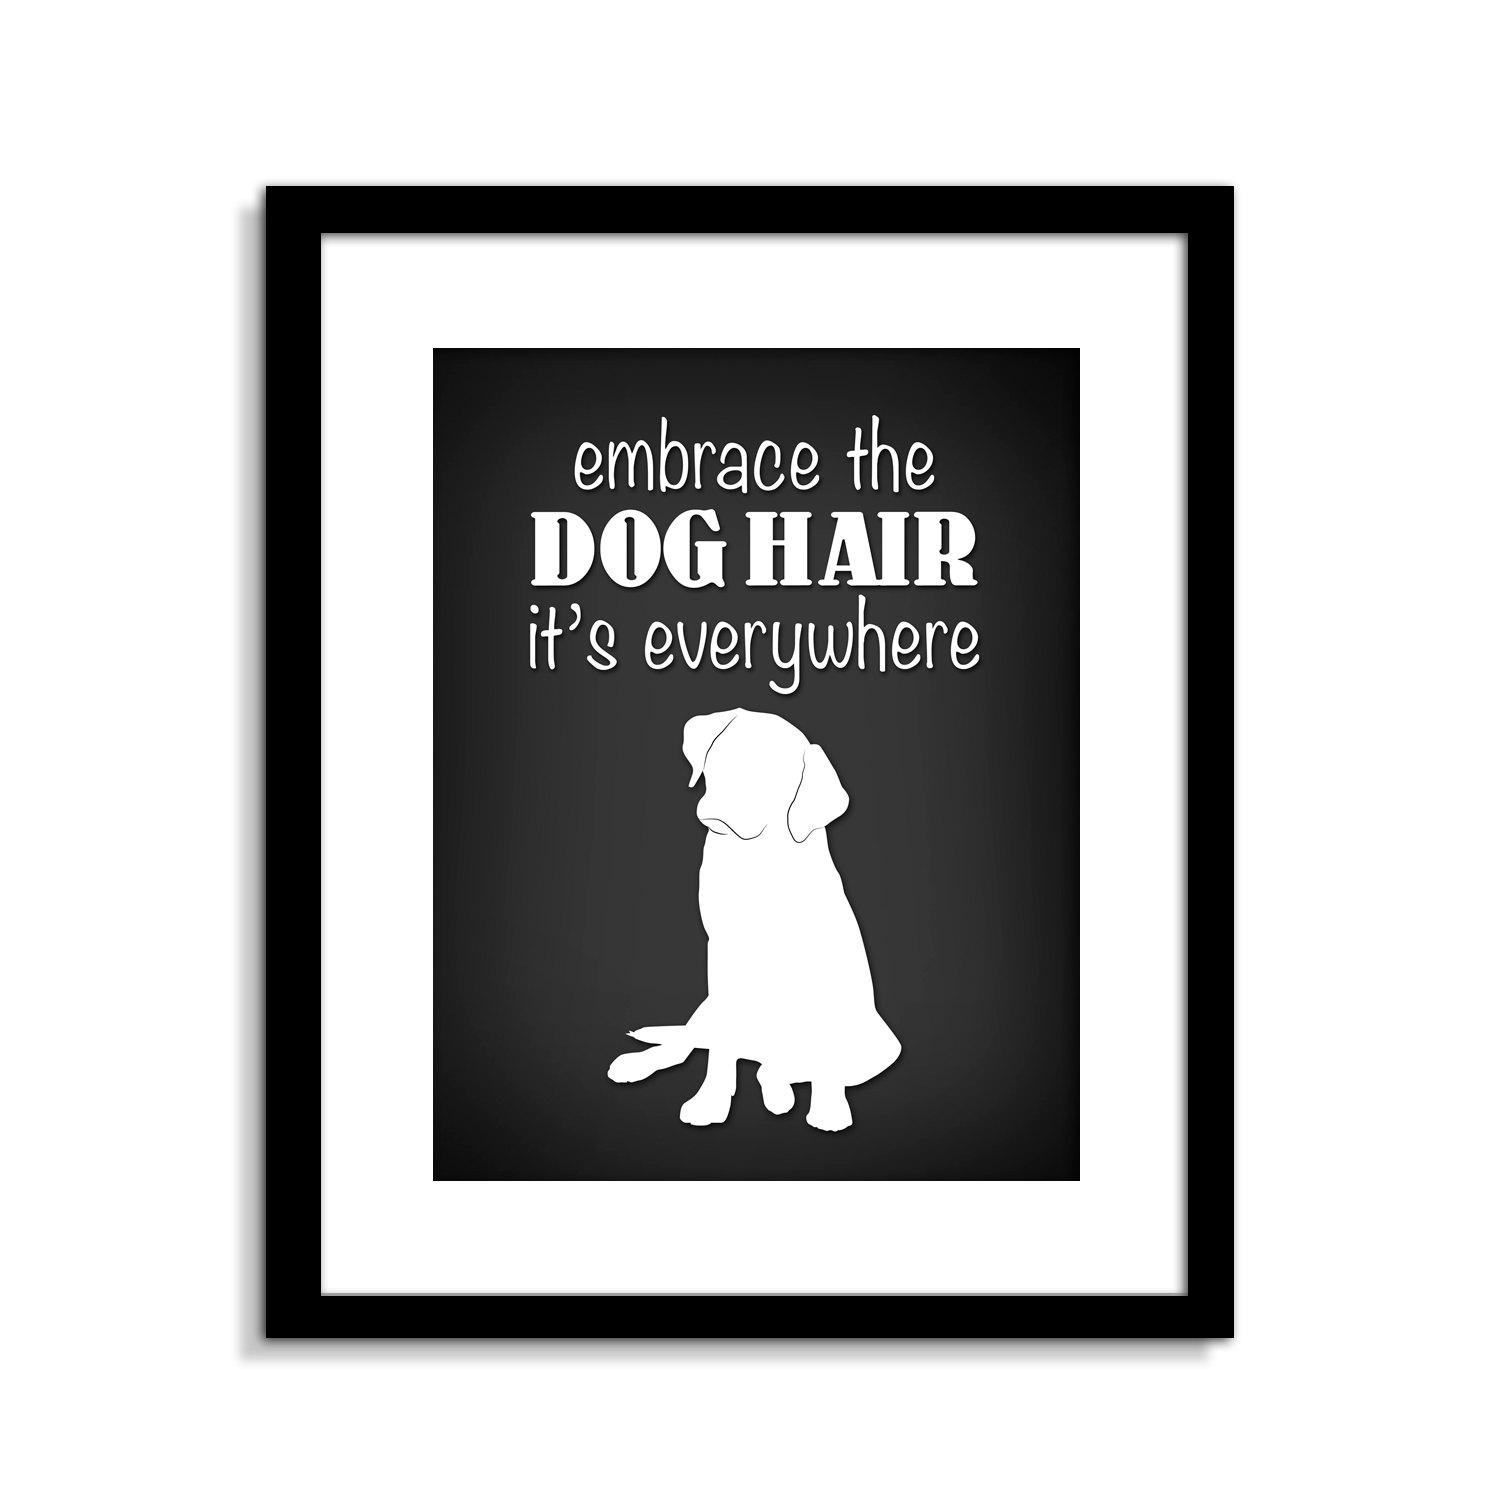 Funny Dog Wall Art Funny Dog Sign Embrace The Dog Hair Dog intended for Dog Sayings Wall Art